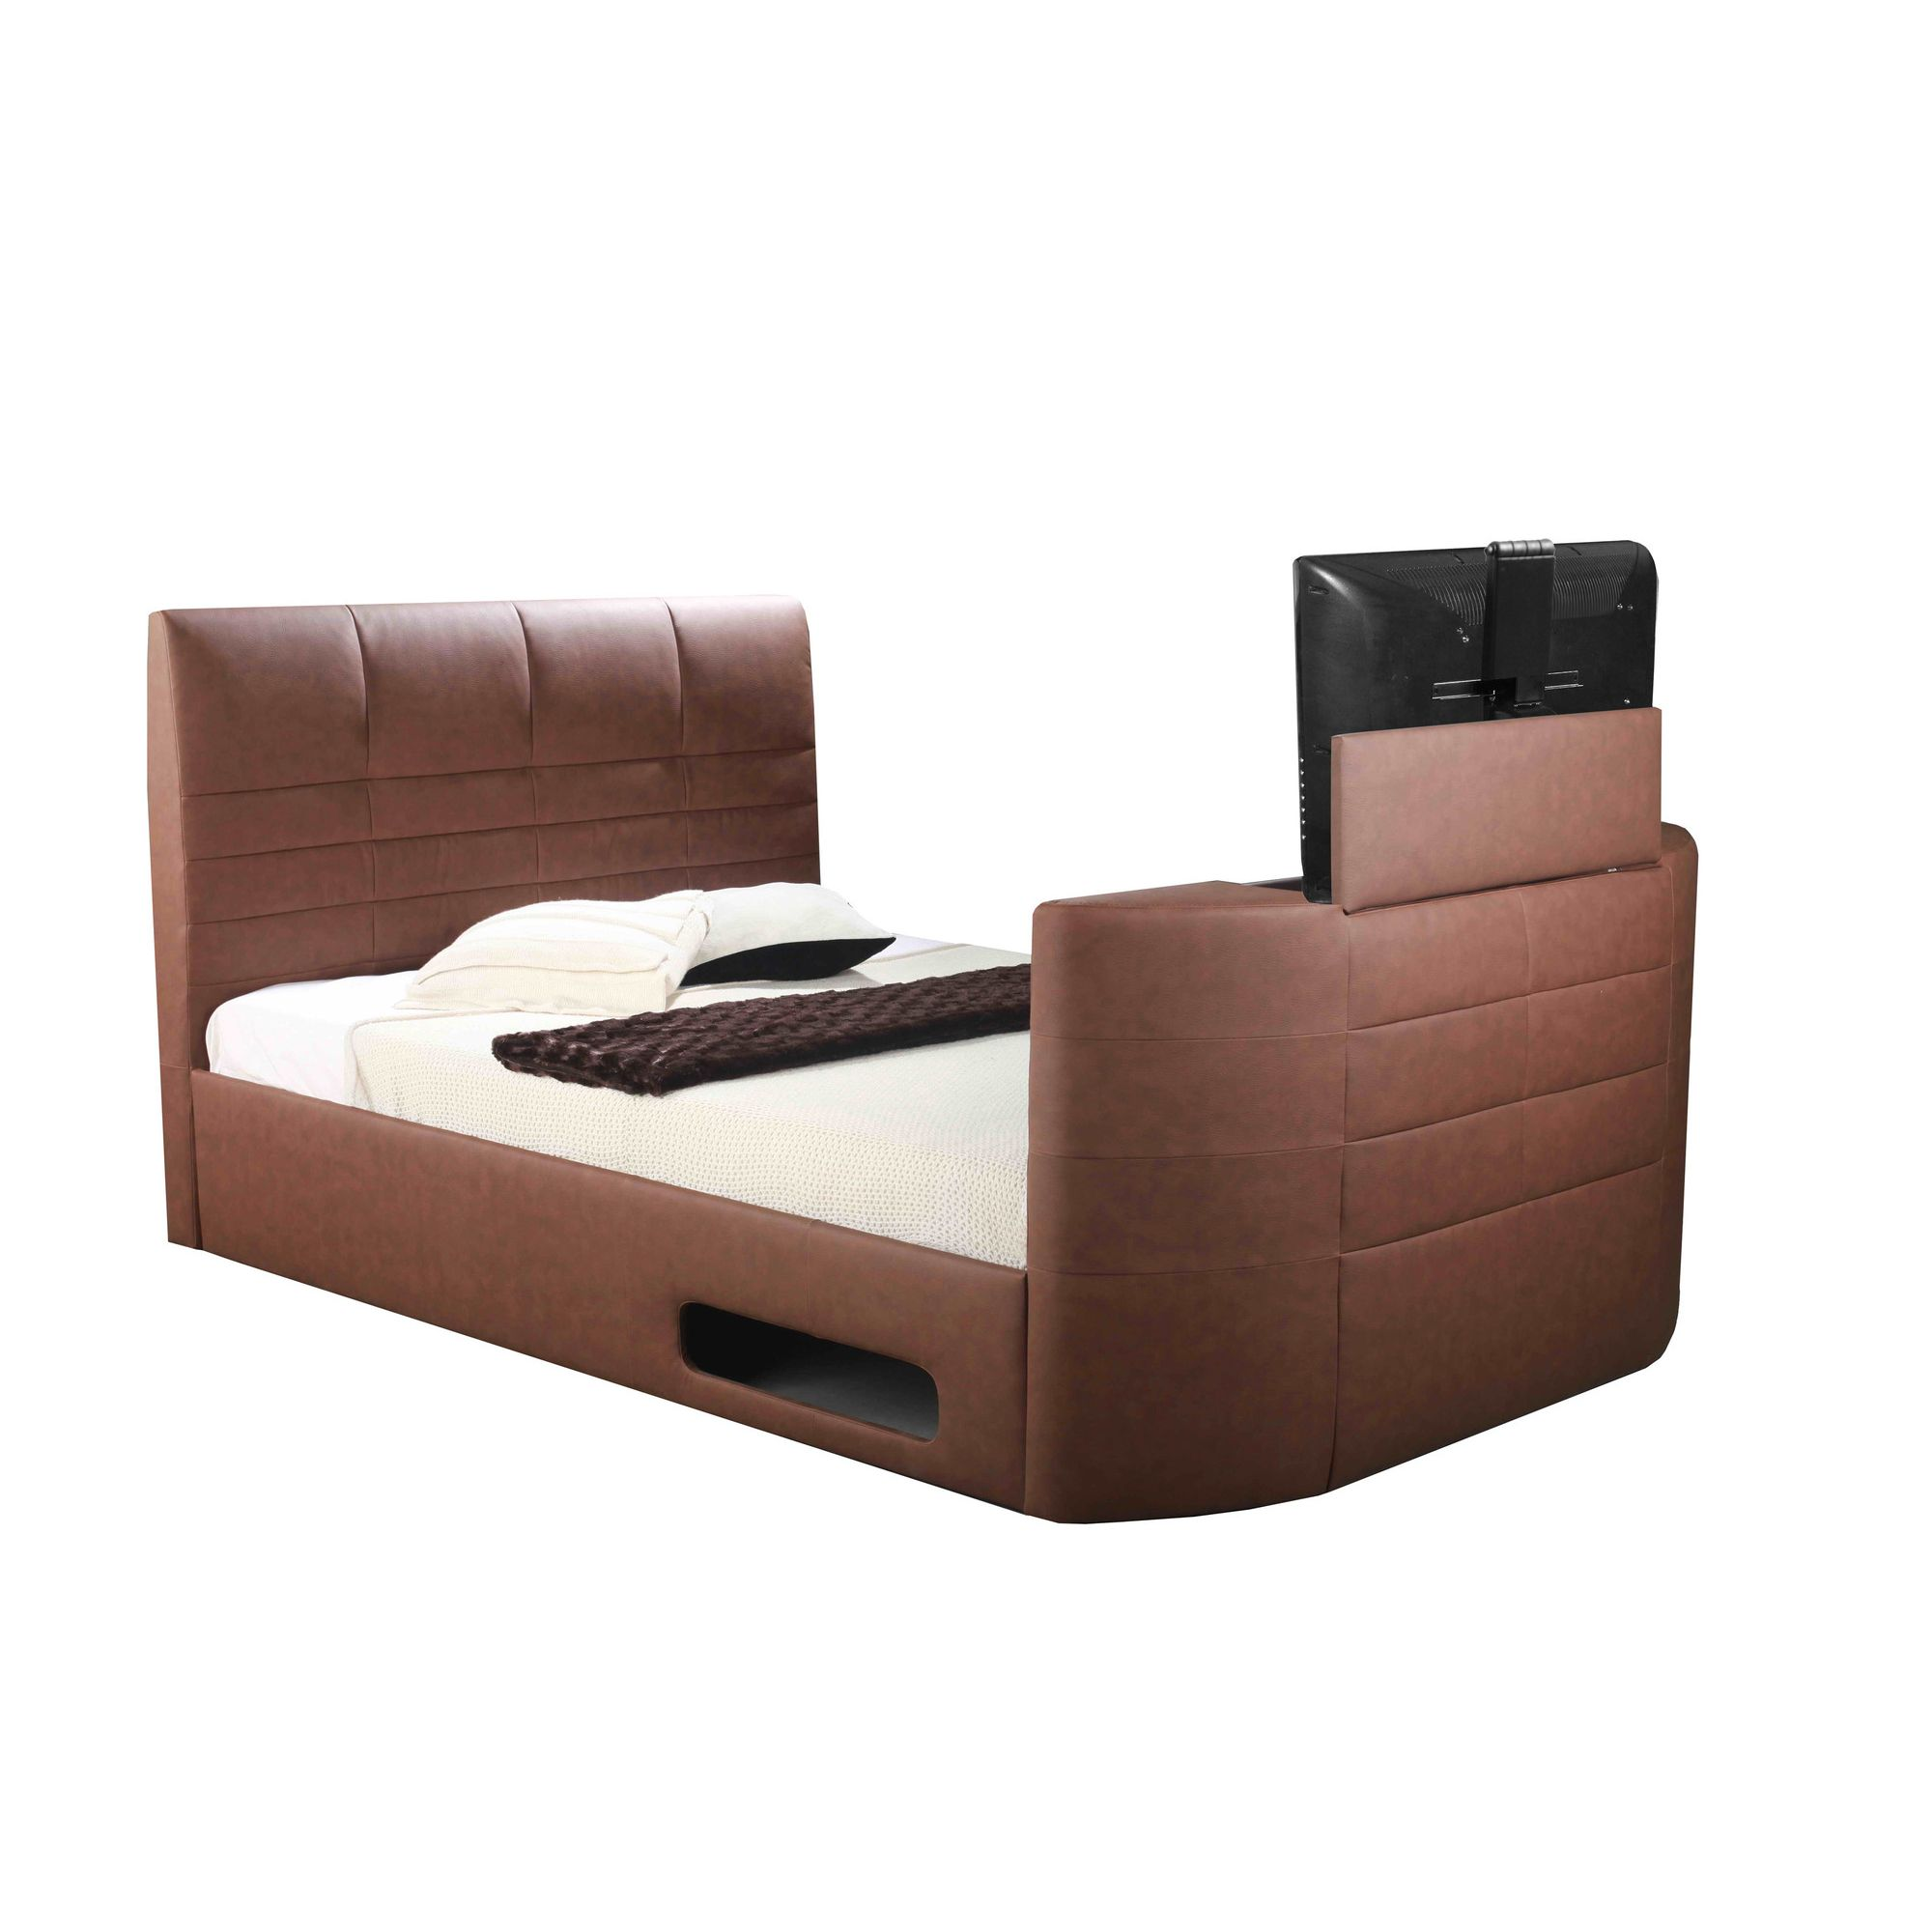 Altruna Miami Electric Wireless TV Bed - Double - Chocolate Brown - Without Ottoman at Tesco Direct